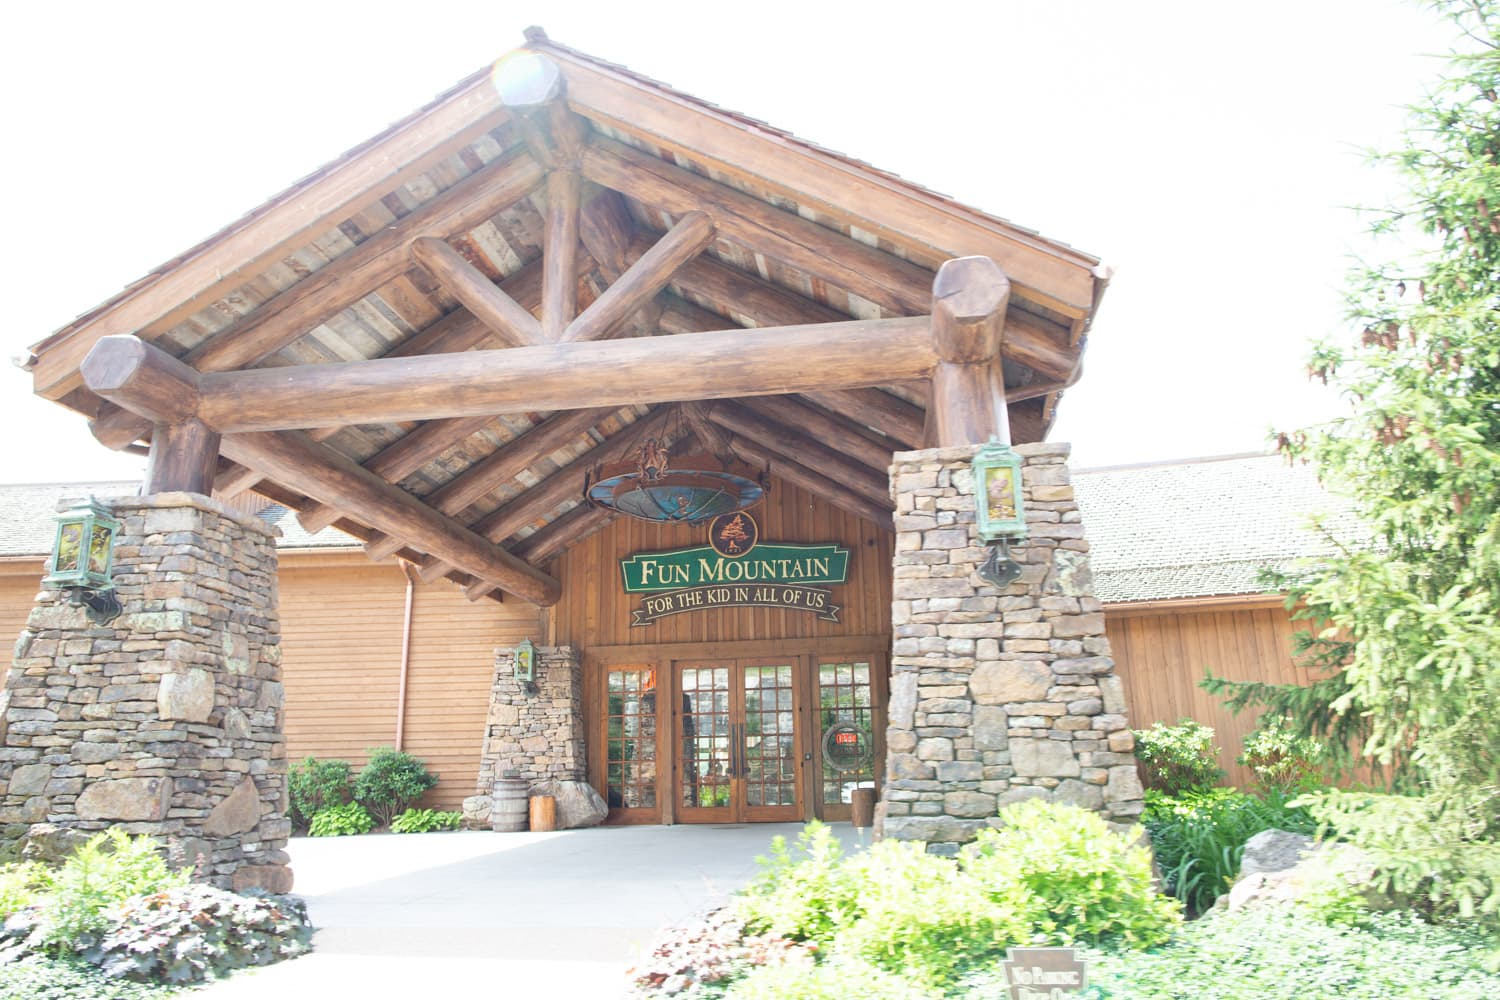 The Ultimate Guide To Big Cedar Lodge And Wilderness Club